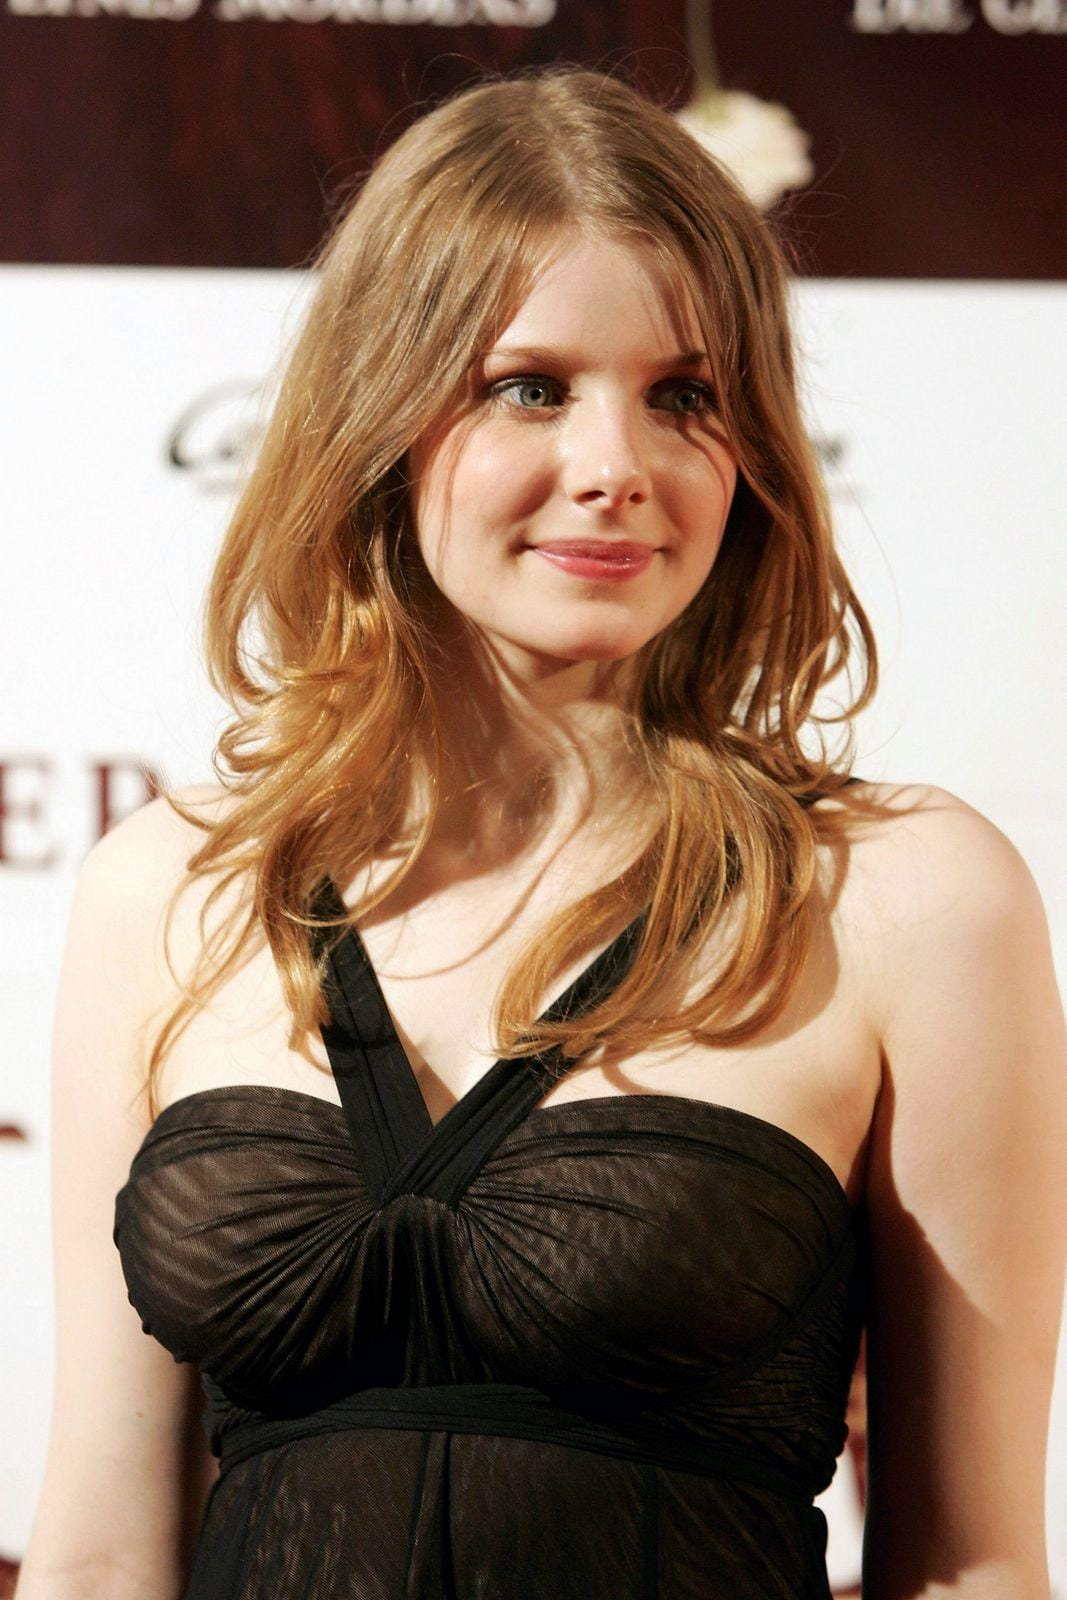 Rachel Hurd-Wood (born 1990)